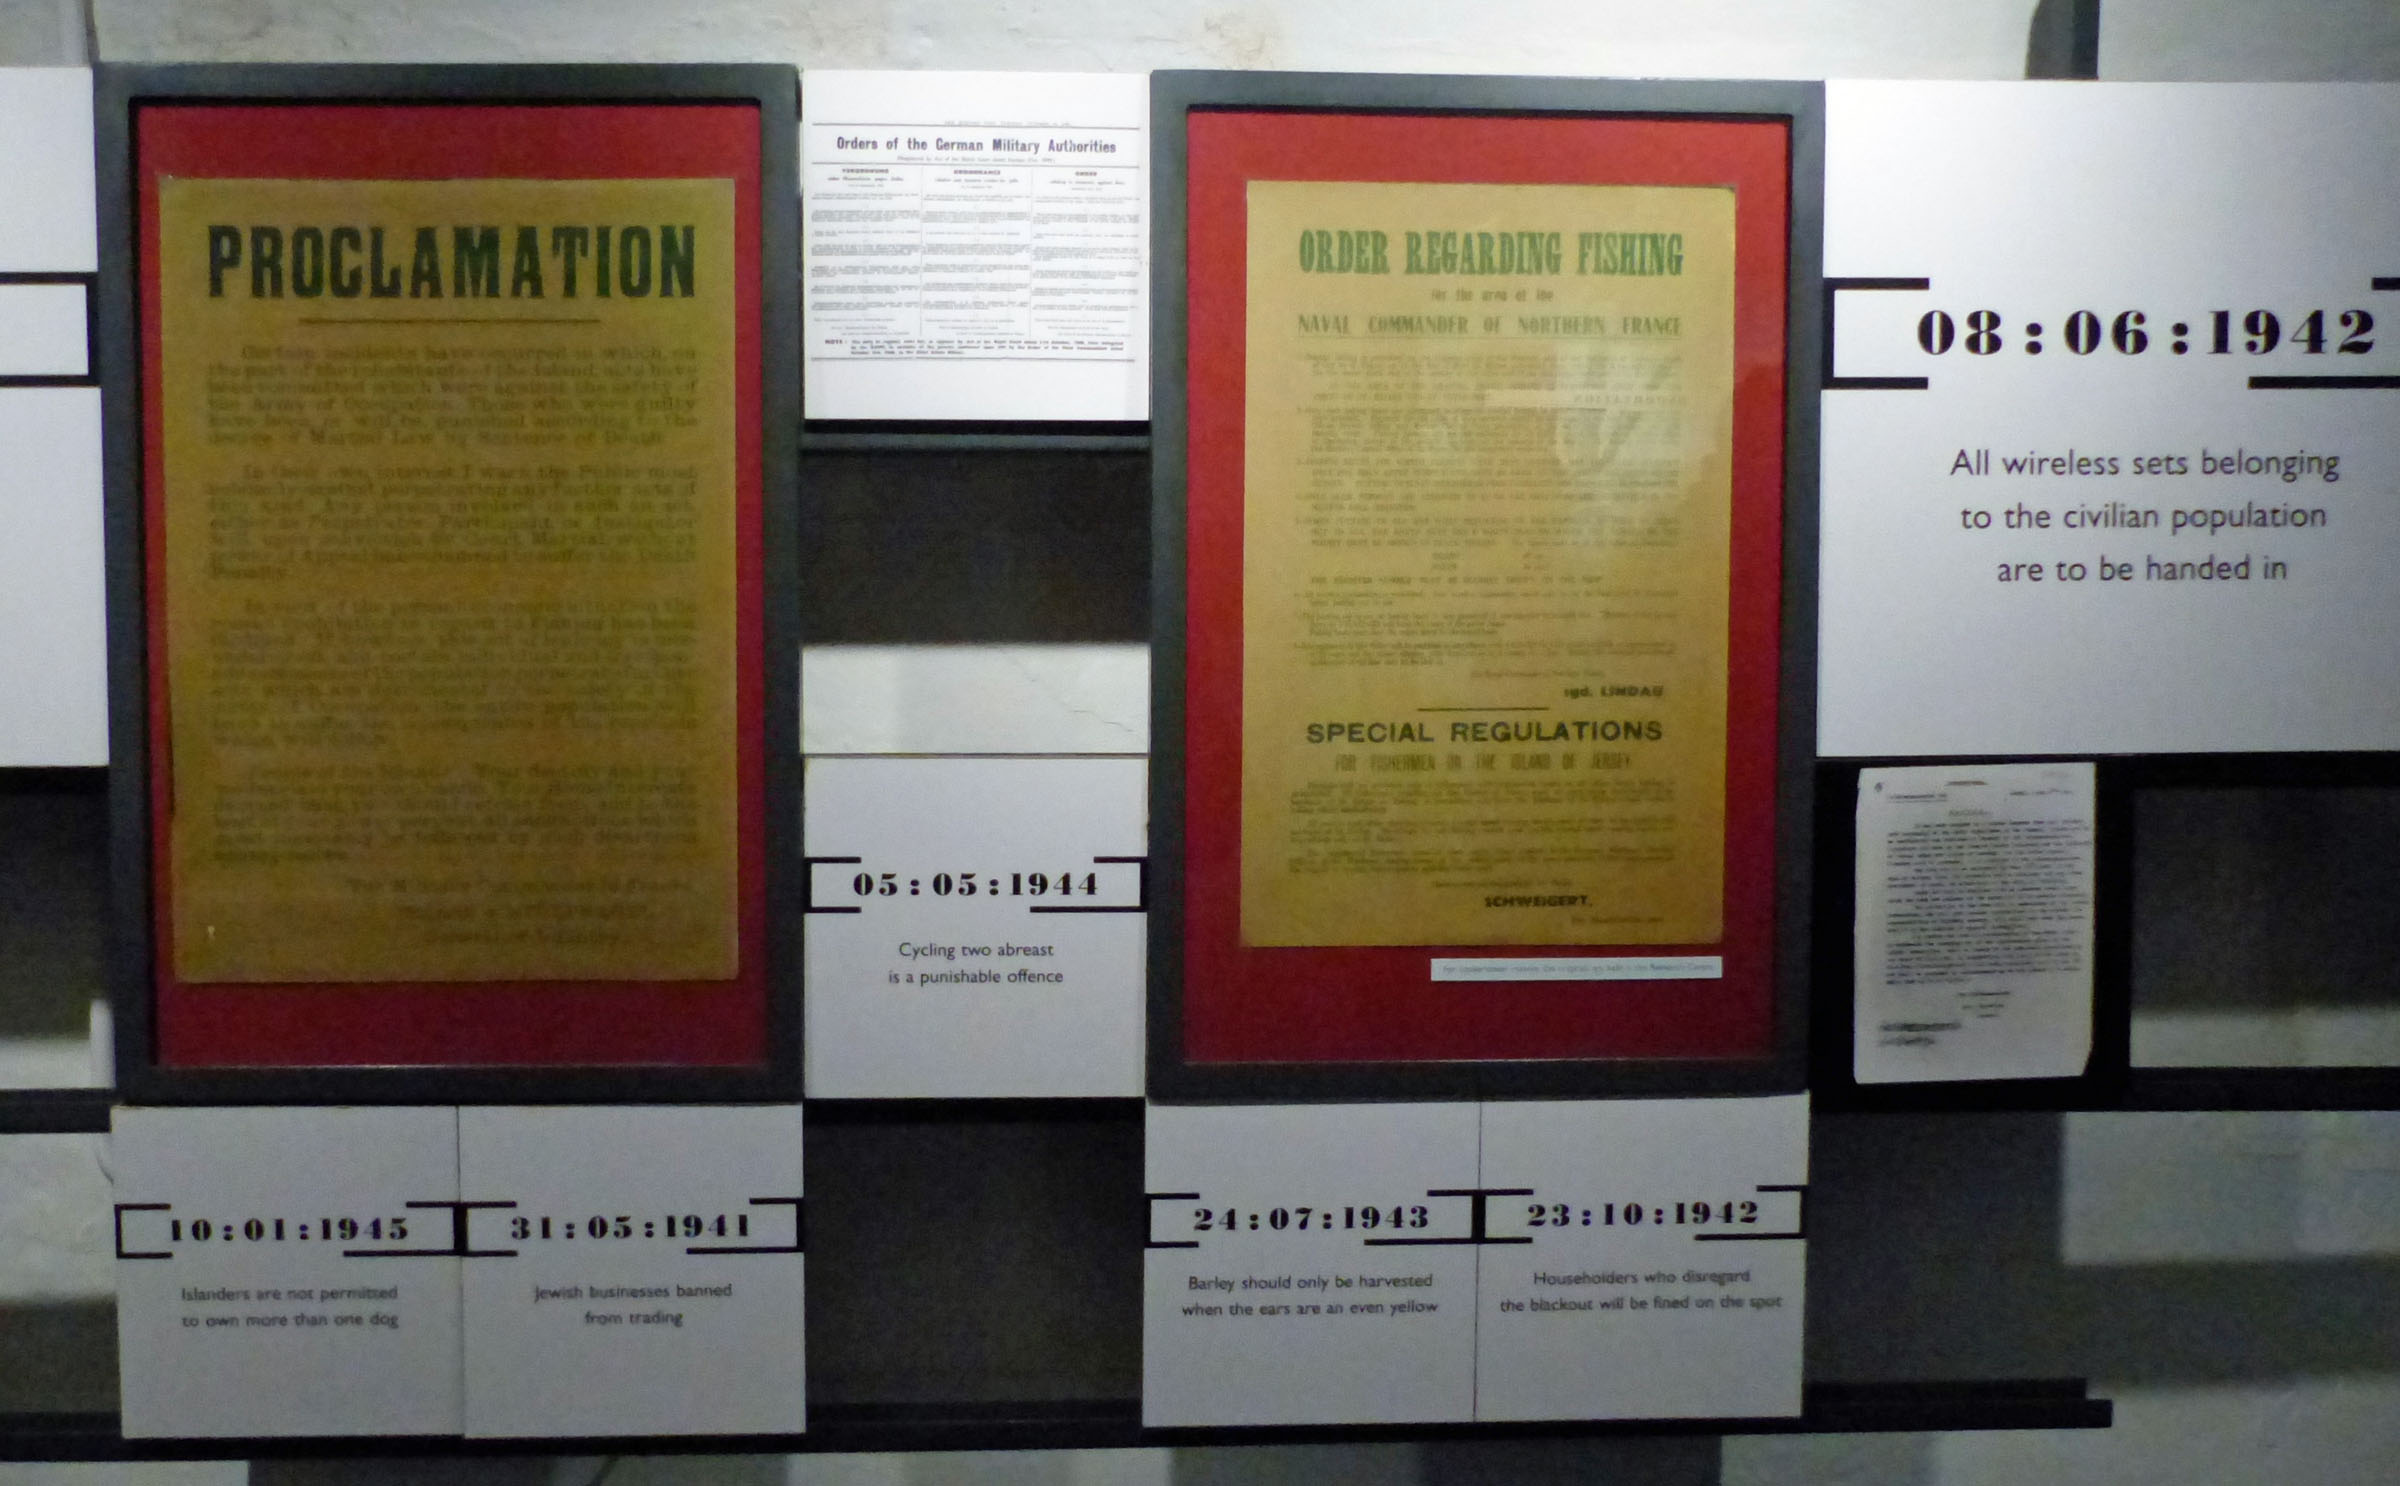 Posters and signs about restrictions